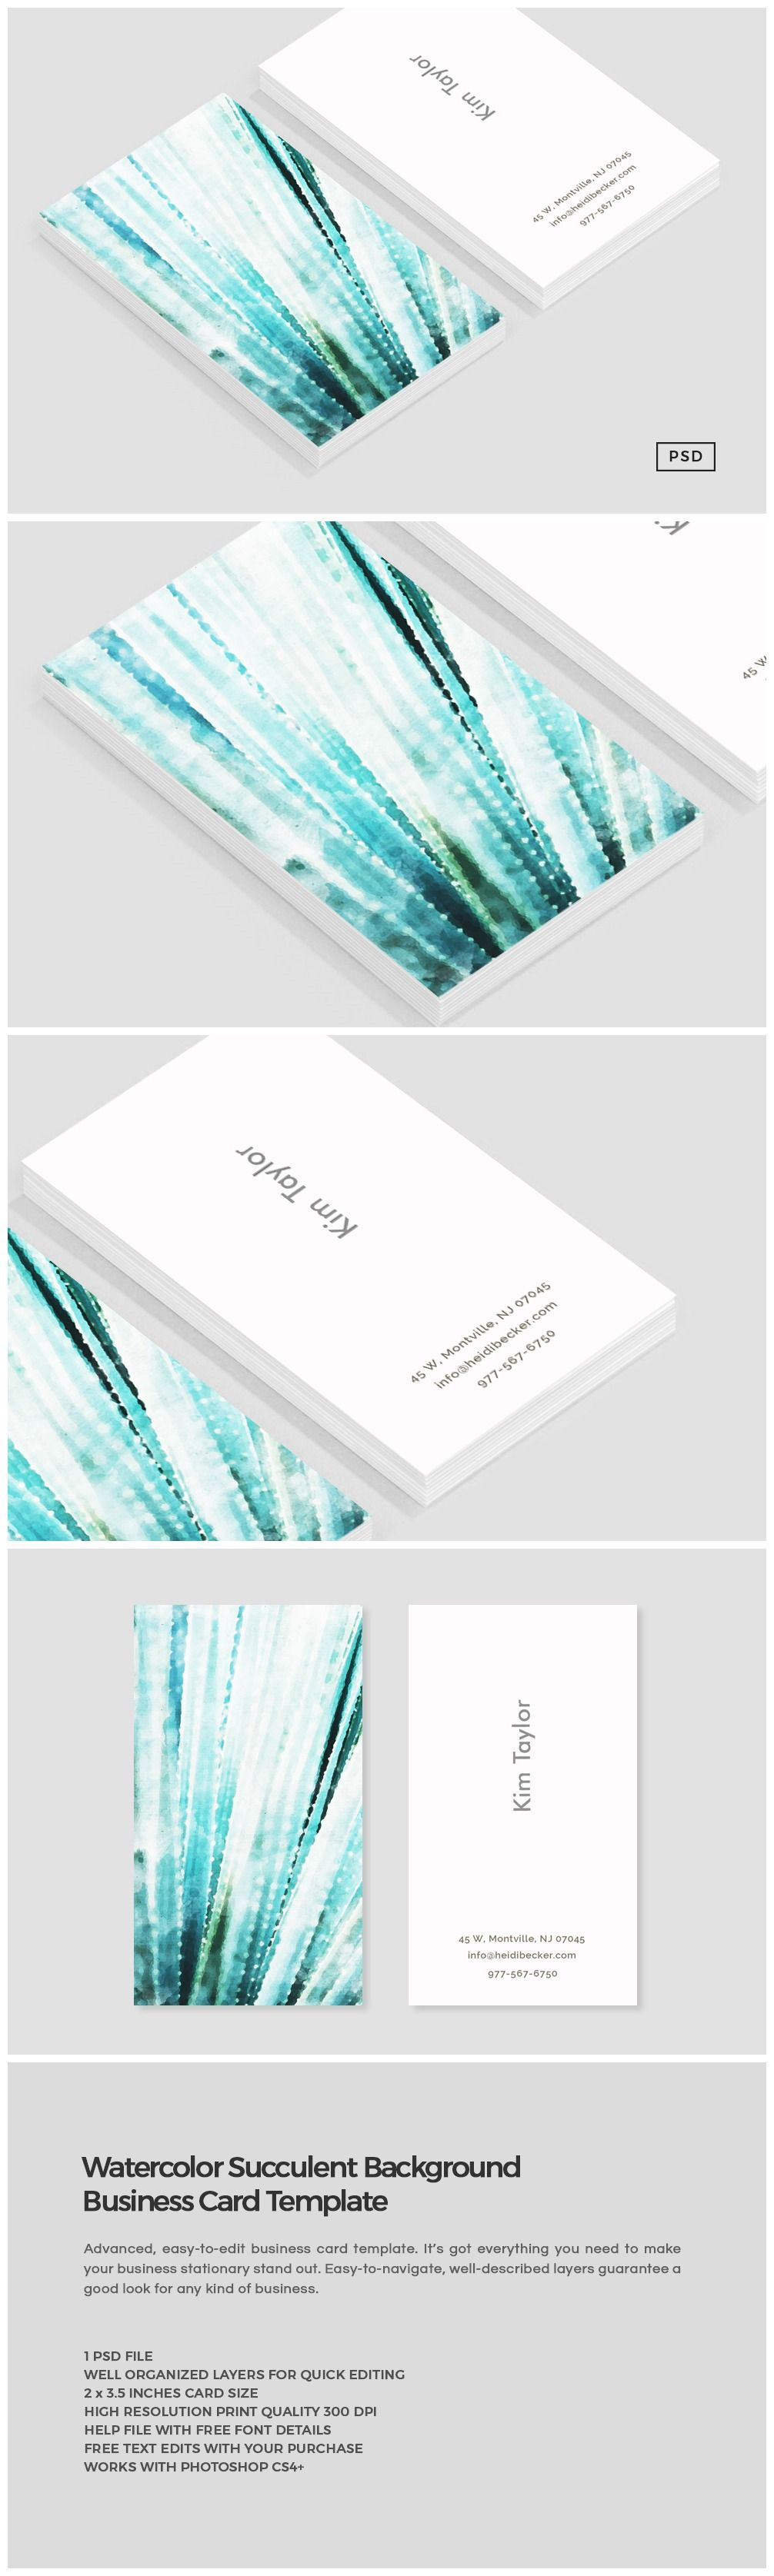 Watercolor Succulent Business Card Business Cards Watercolor Watercolor Business Cards Photography Business Cards